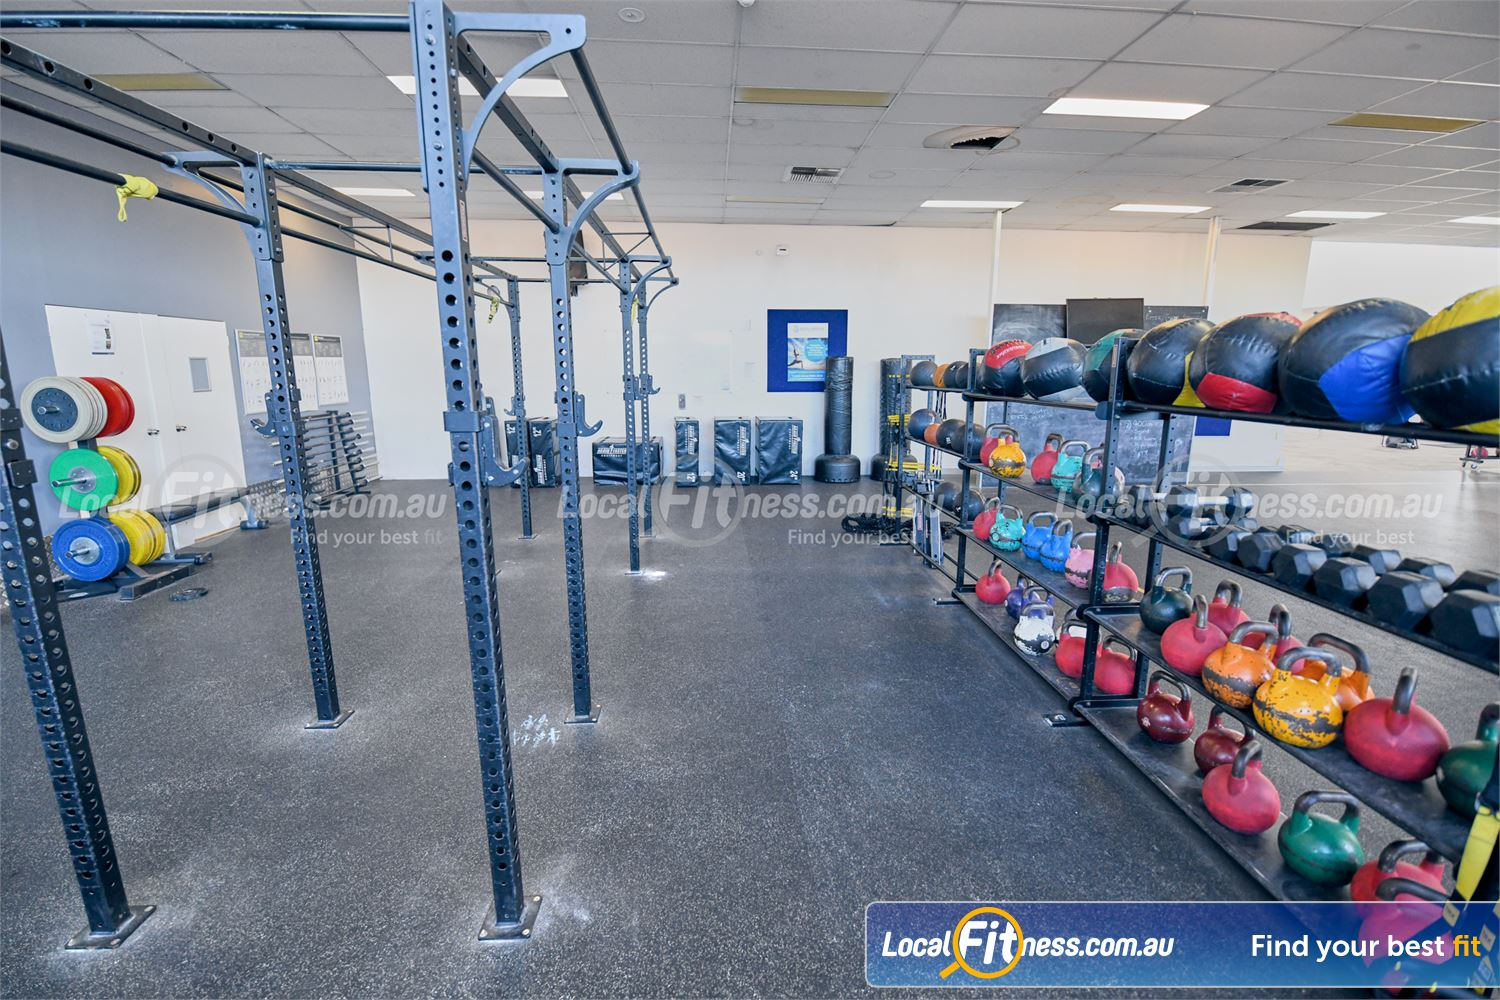 Goodlife Health Clubs Near Chadstone The functional area is fully equipped with kettlebells, wallballs and more.